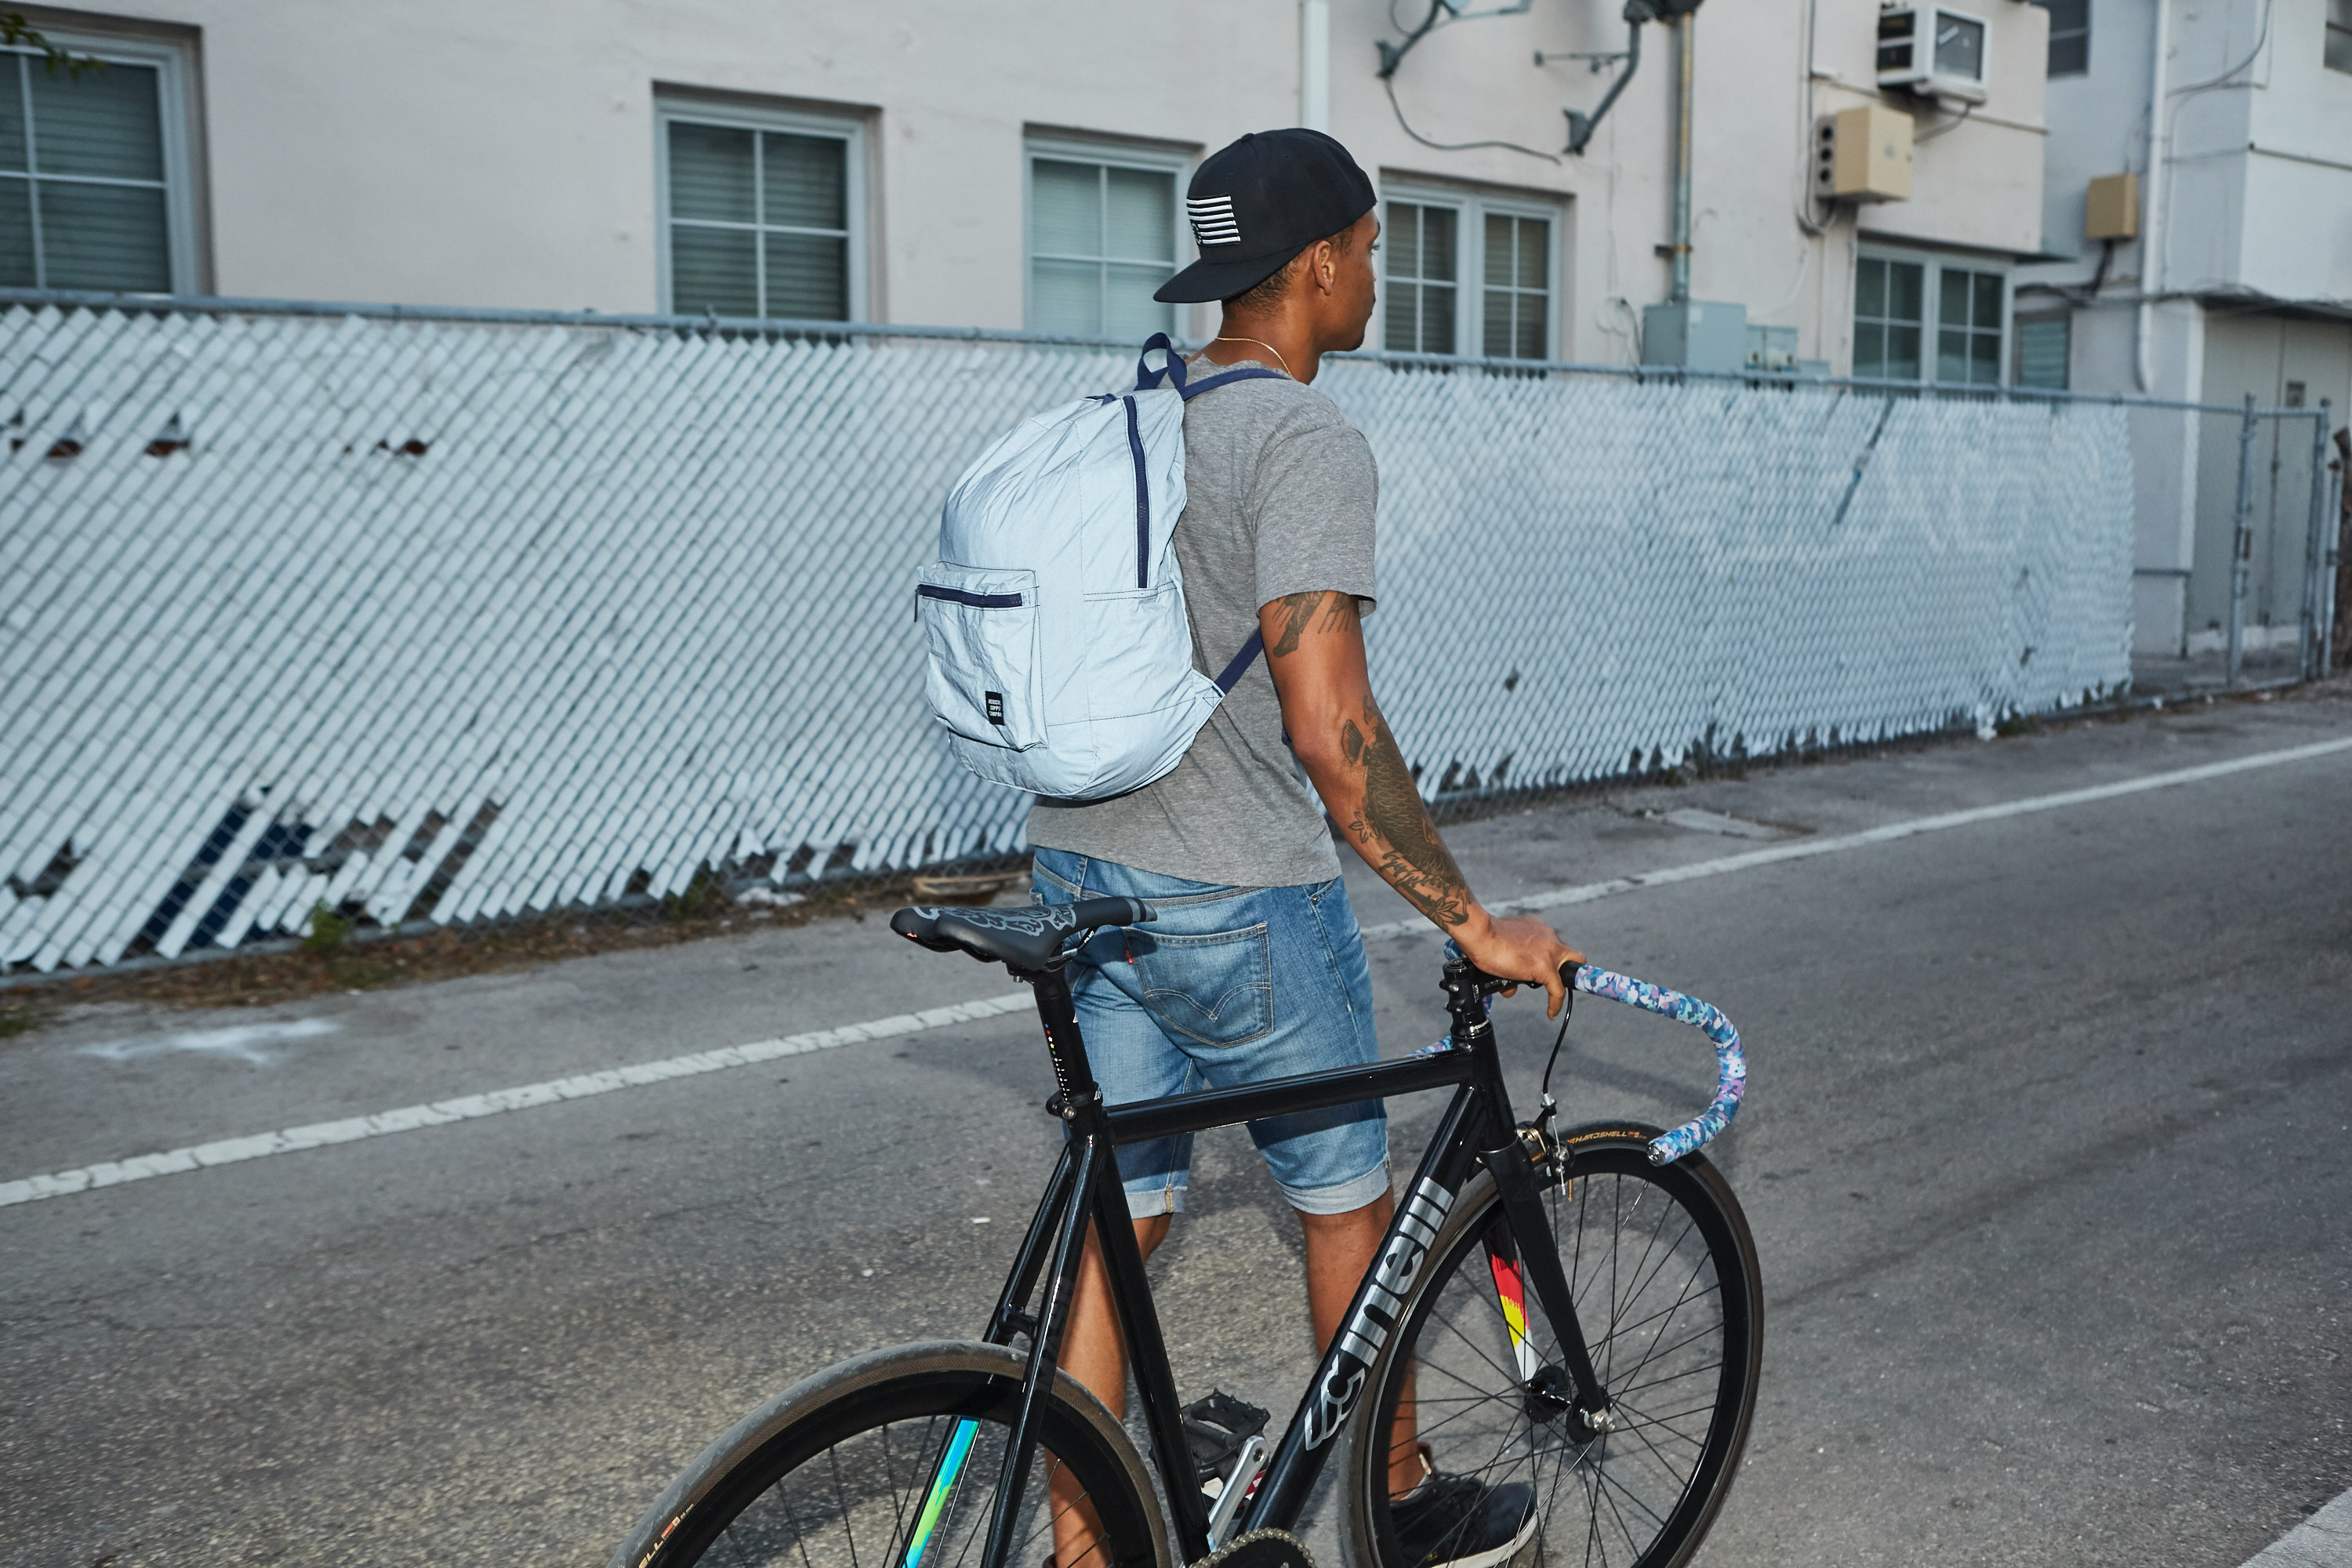 herschel_supply_co_wordintown_copyright_cinelli_levis_convers_fixed_gear_fixie_bycicles_5